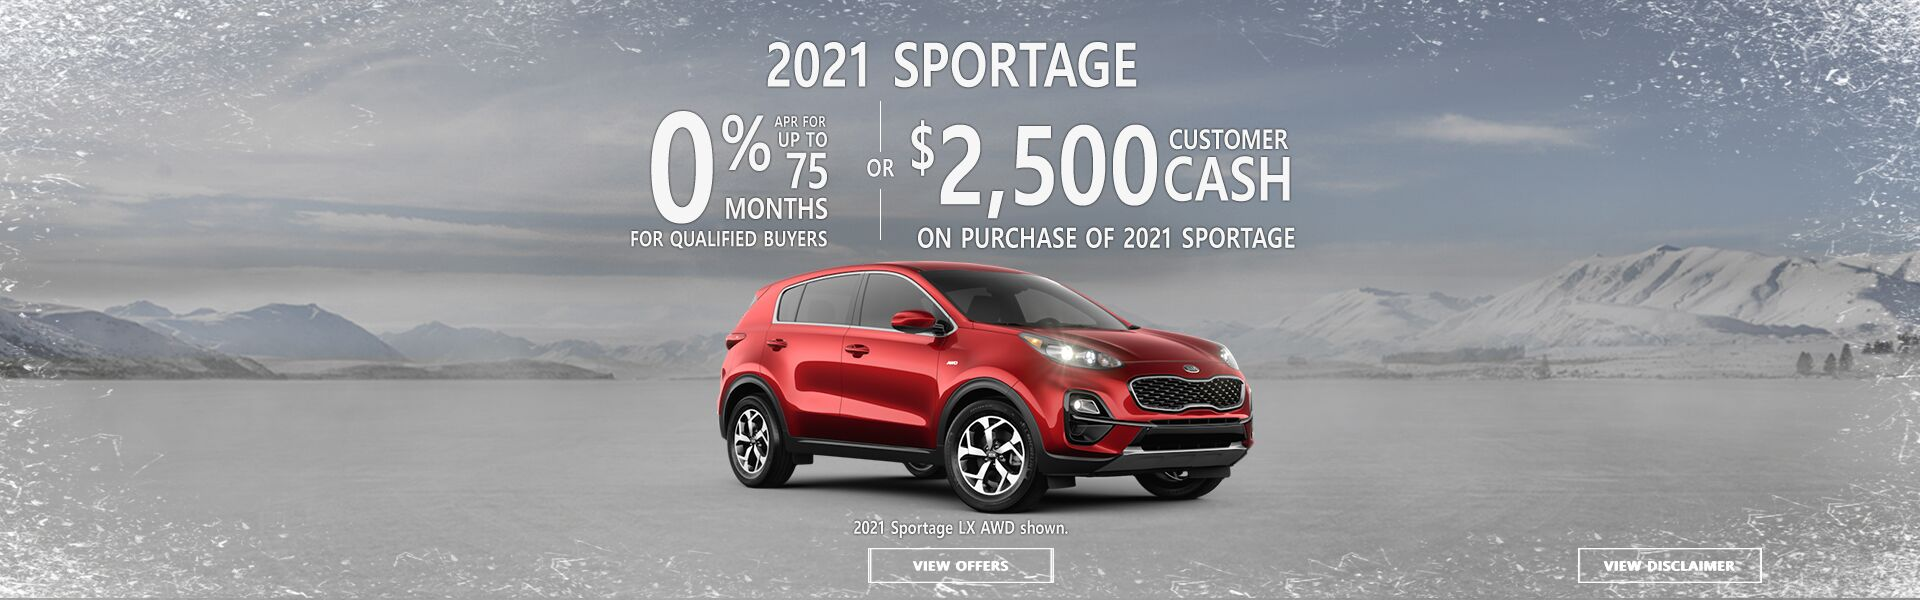 Kia Sportage January